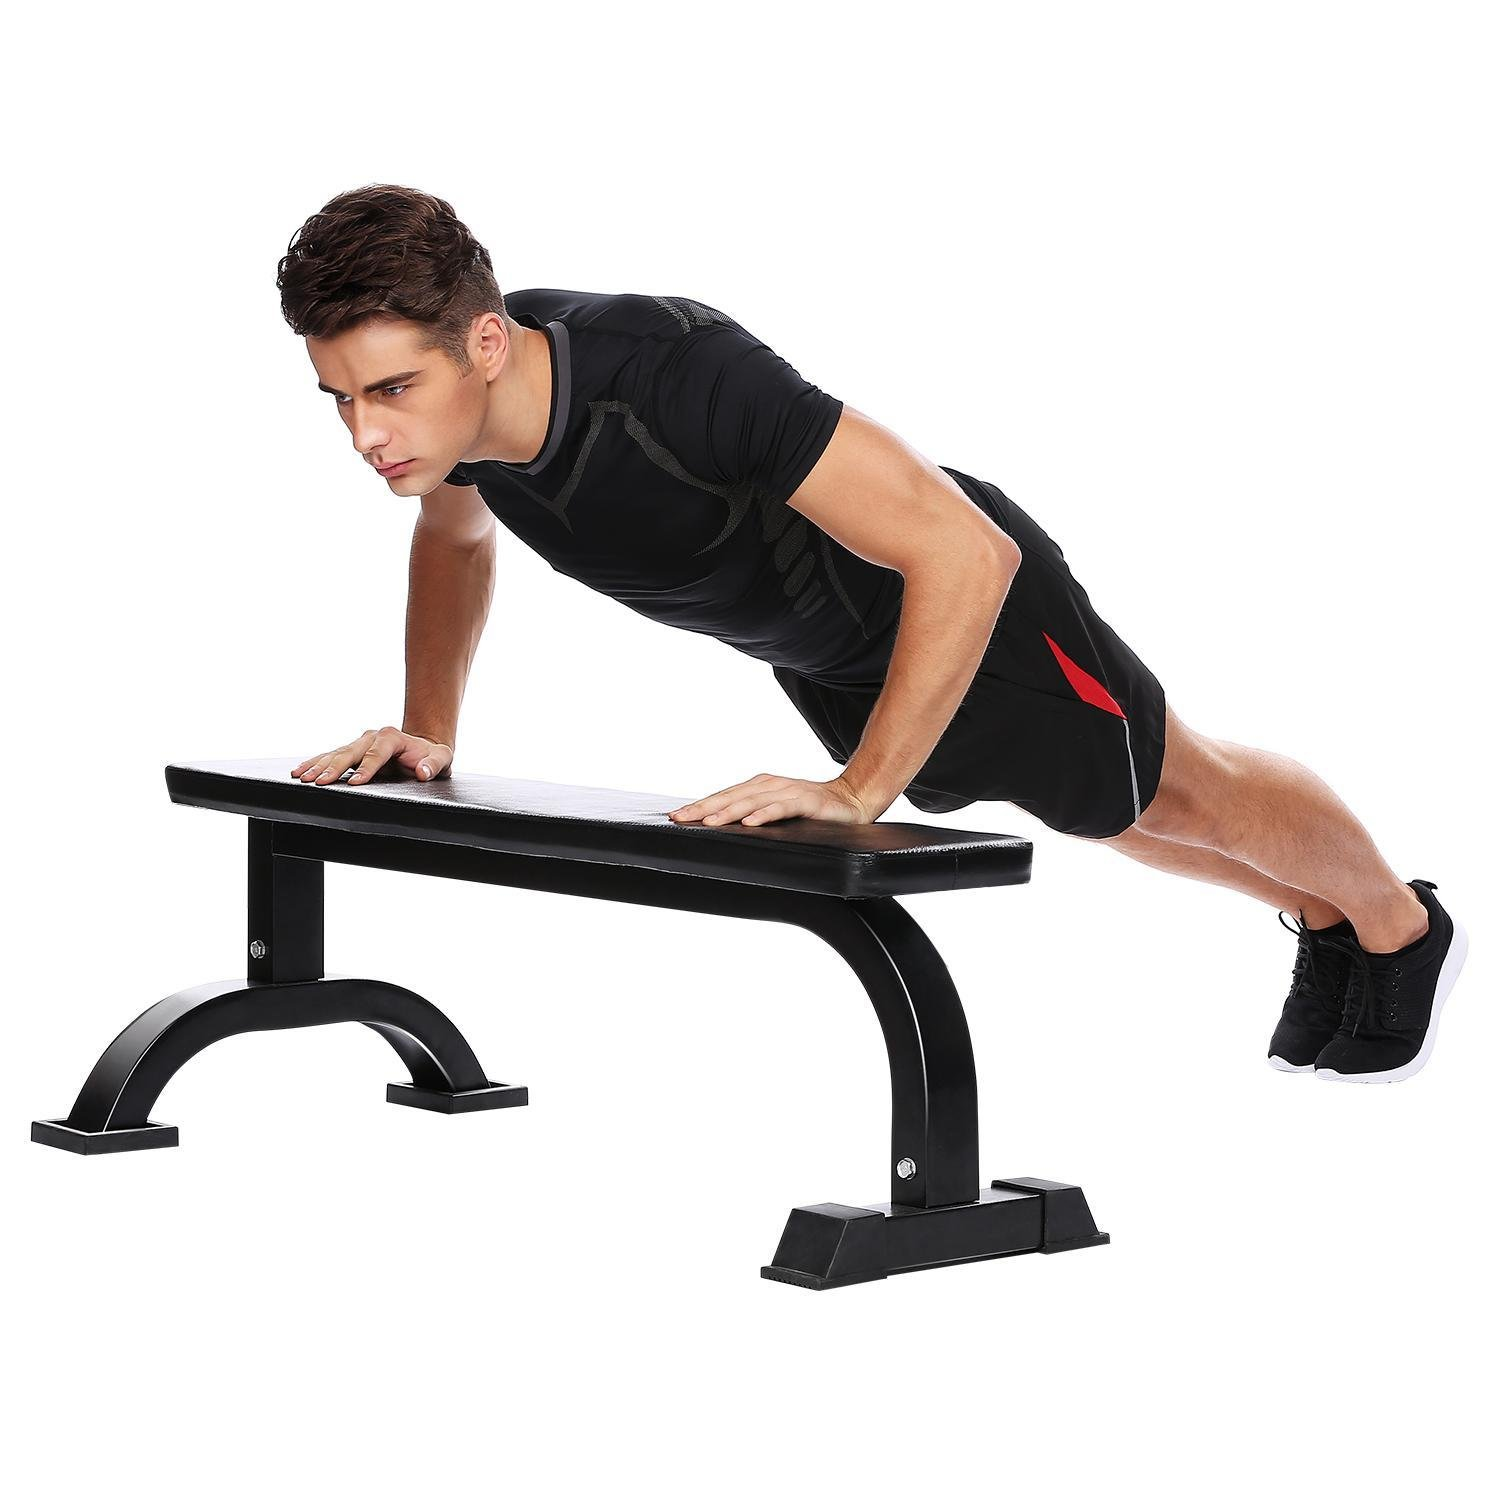 PEATAO Flat Bench Extra Strength Heavy Duty Equipment Padded Workout Bench For Weight Lifting, Sit-Up, Push-Up, Body Training by PEATAO